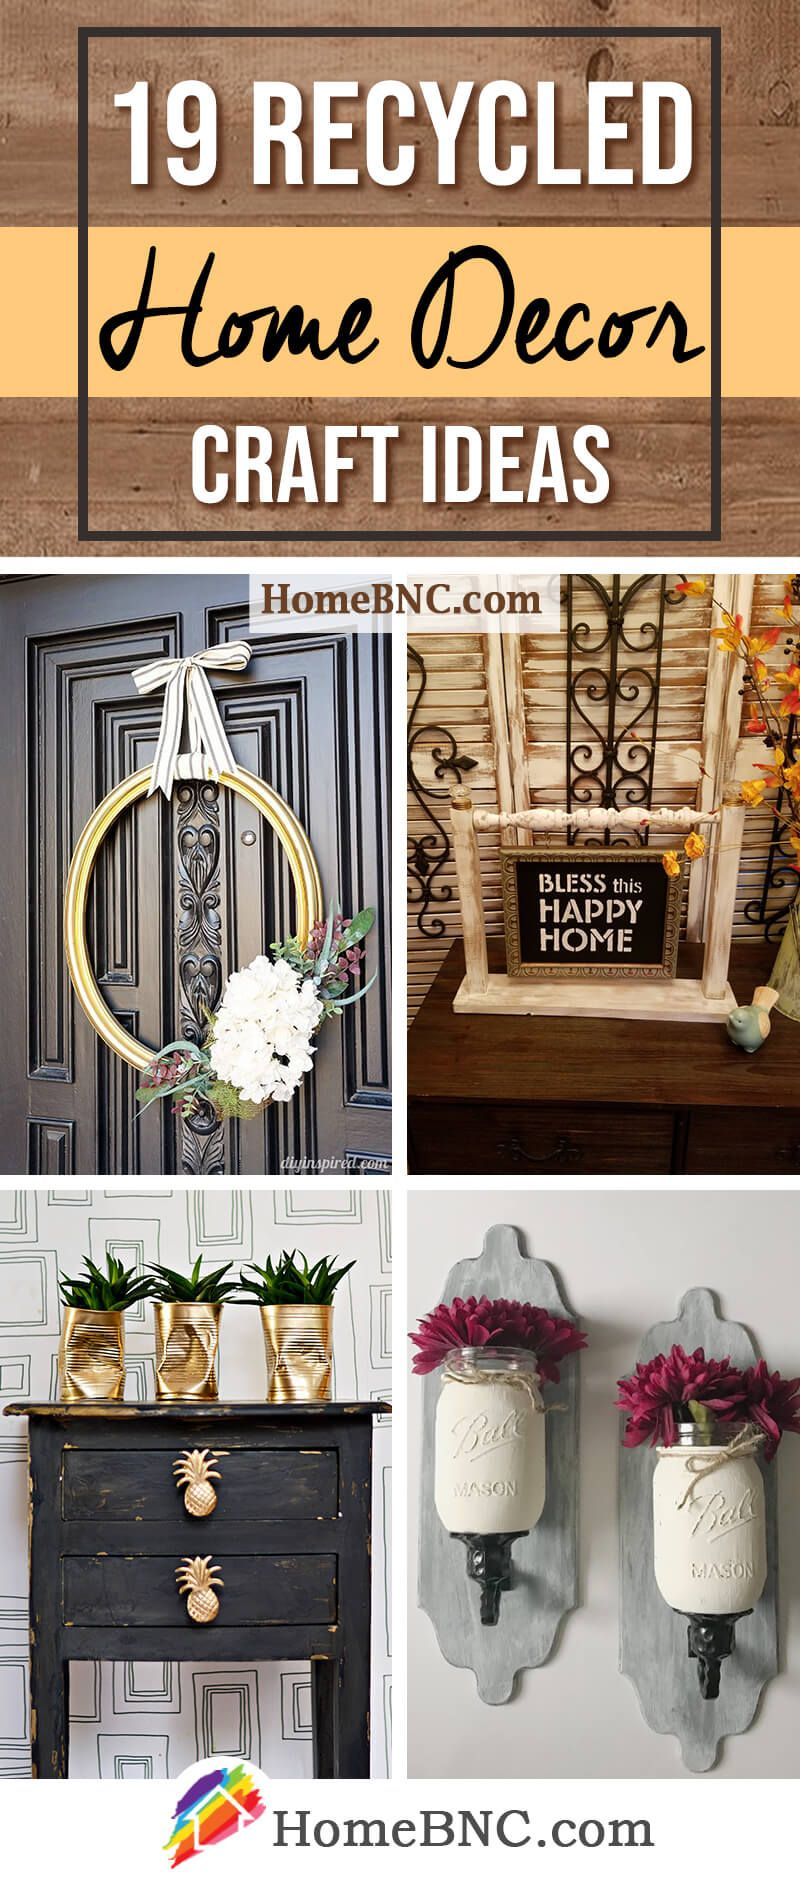 19 Recycled Home Decor Crafts For A Budget Friendly Upgrade